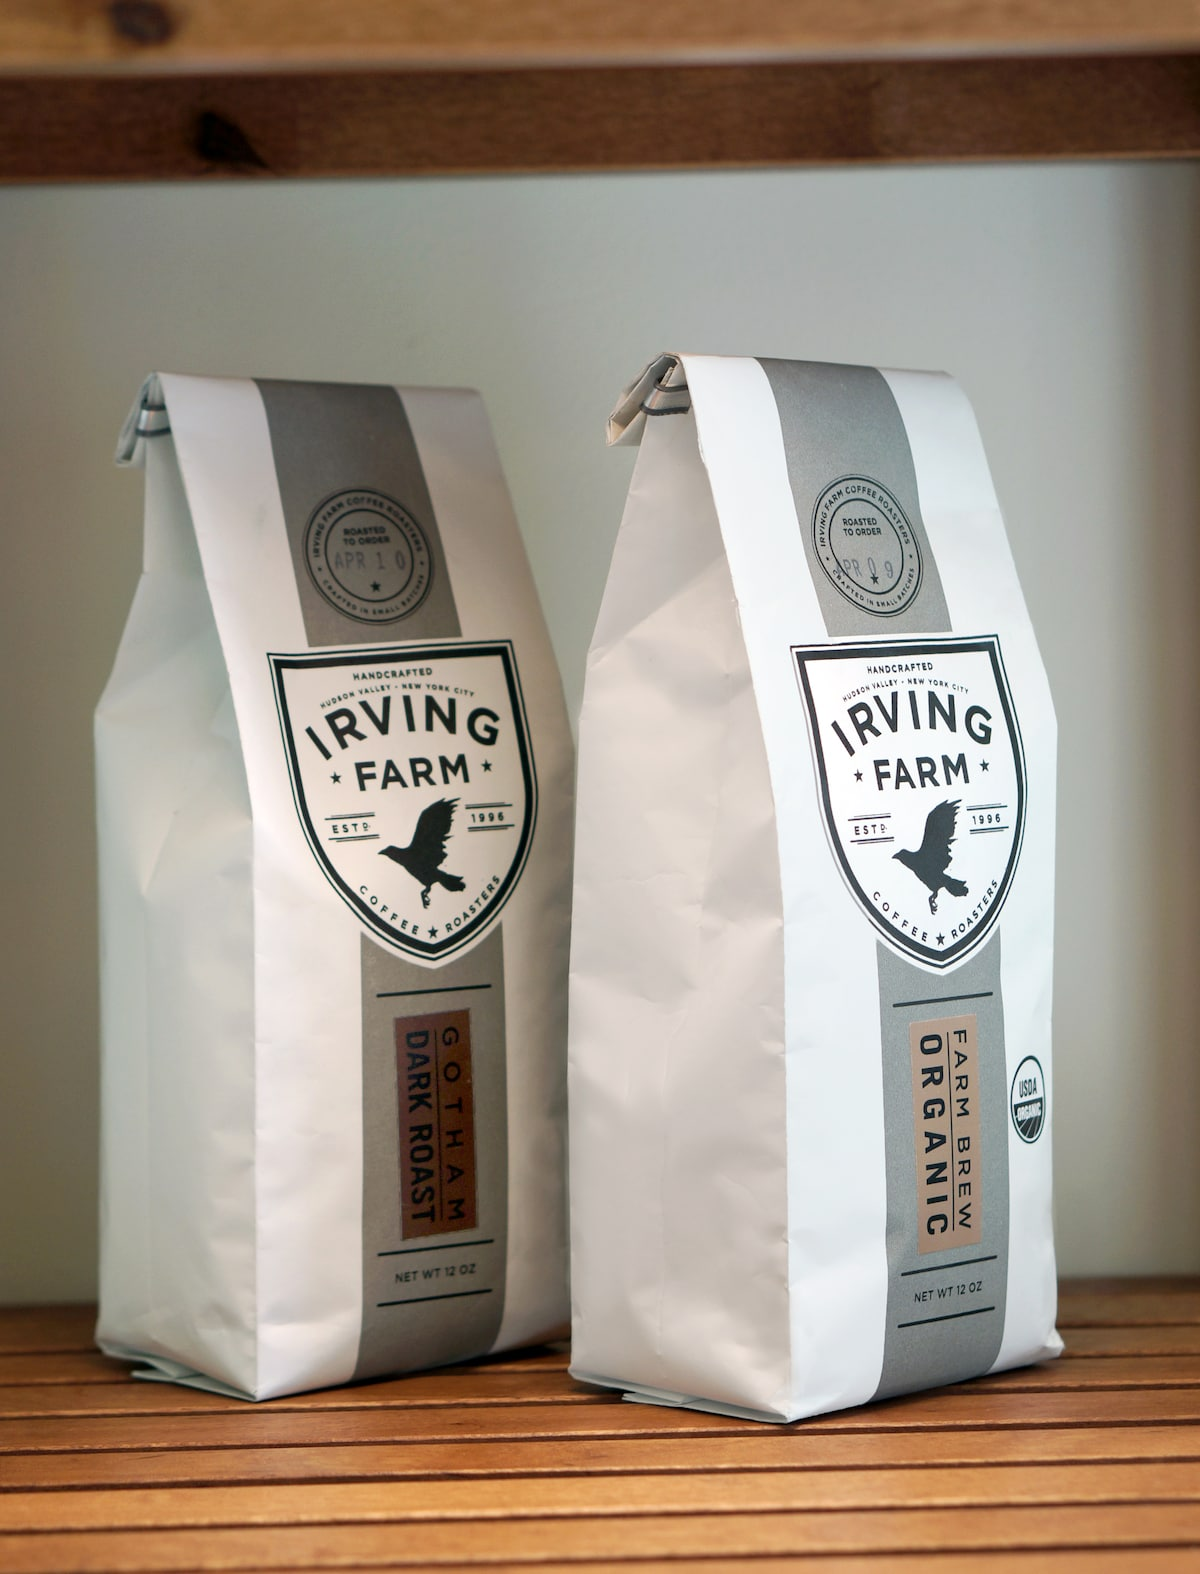 We're a coffee shop located in Millerton, NY with